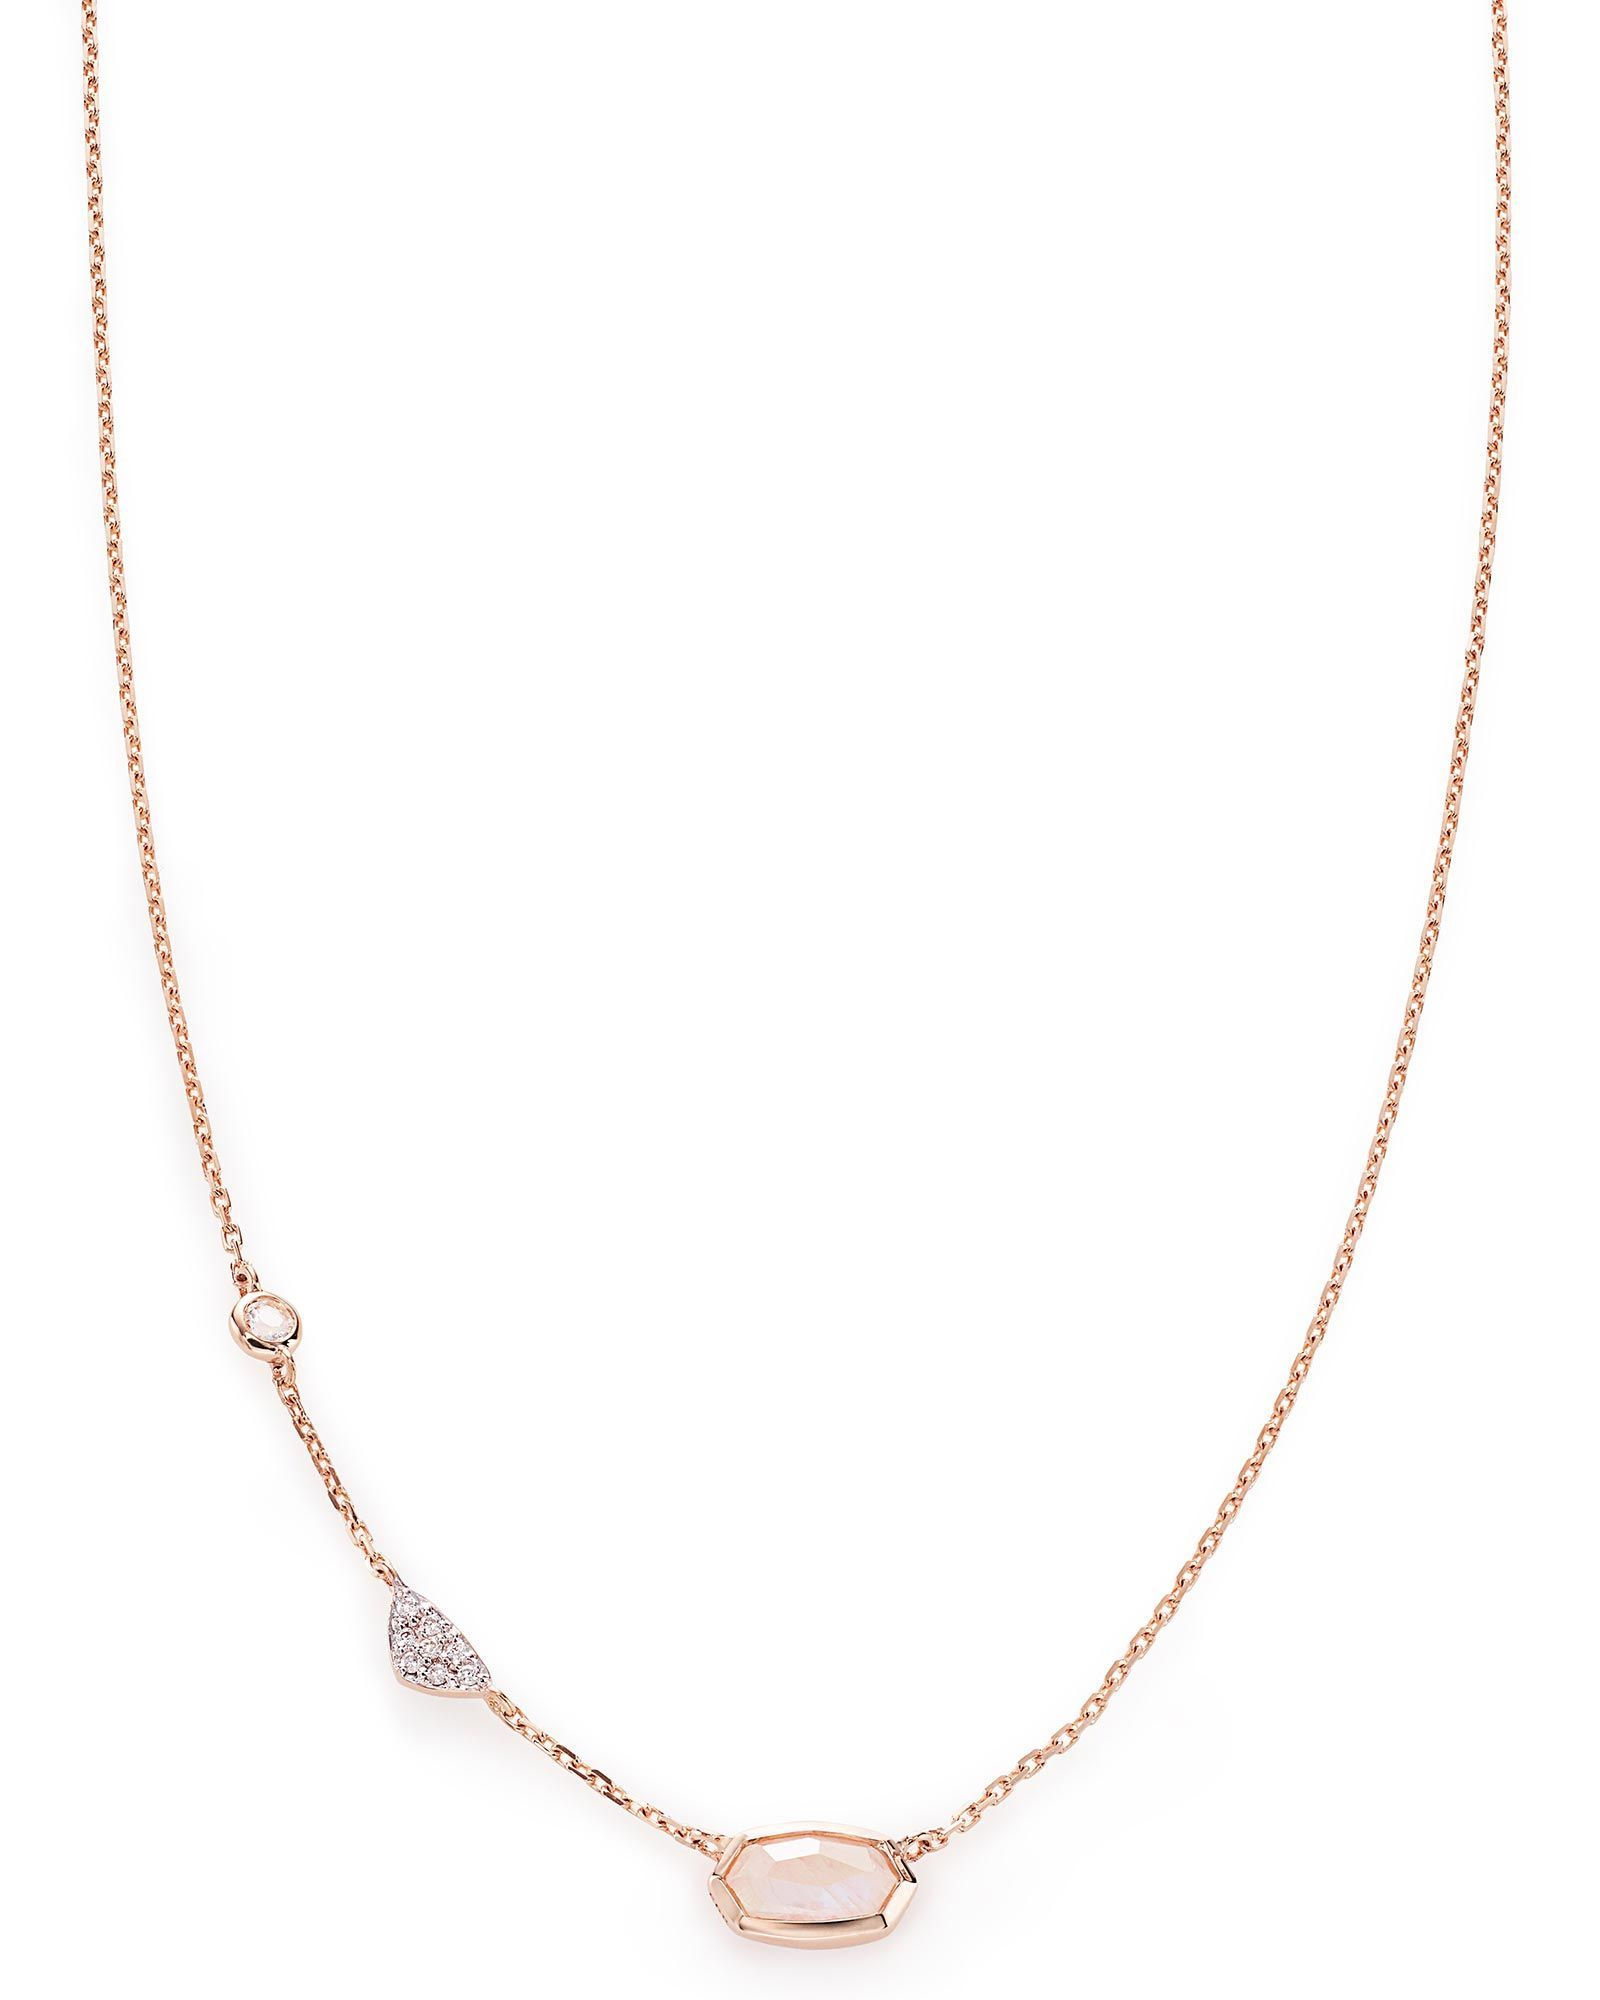 Shop fine jewelry at kendra scott with a rainbow moonstone strung